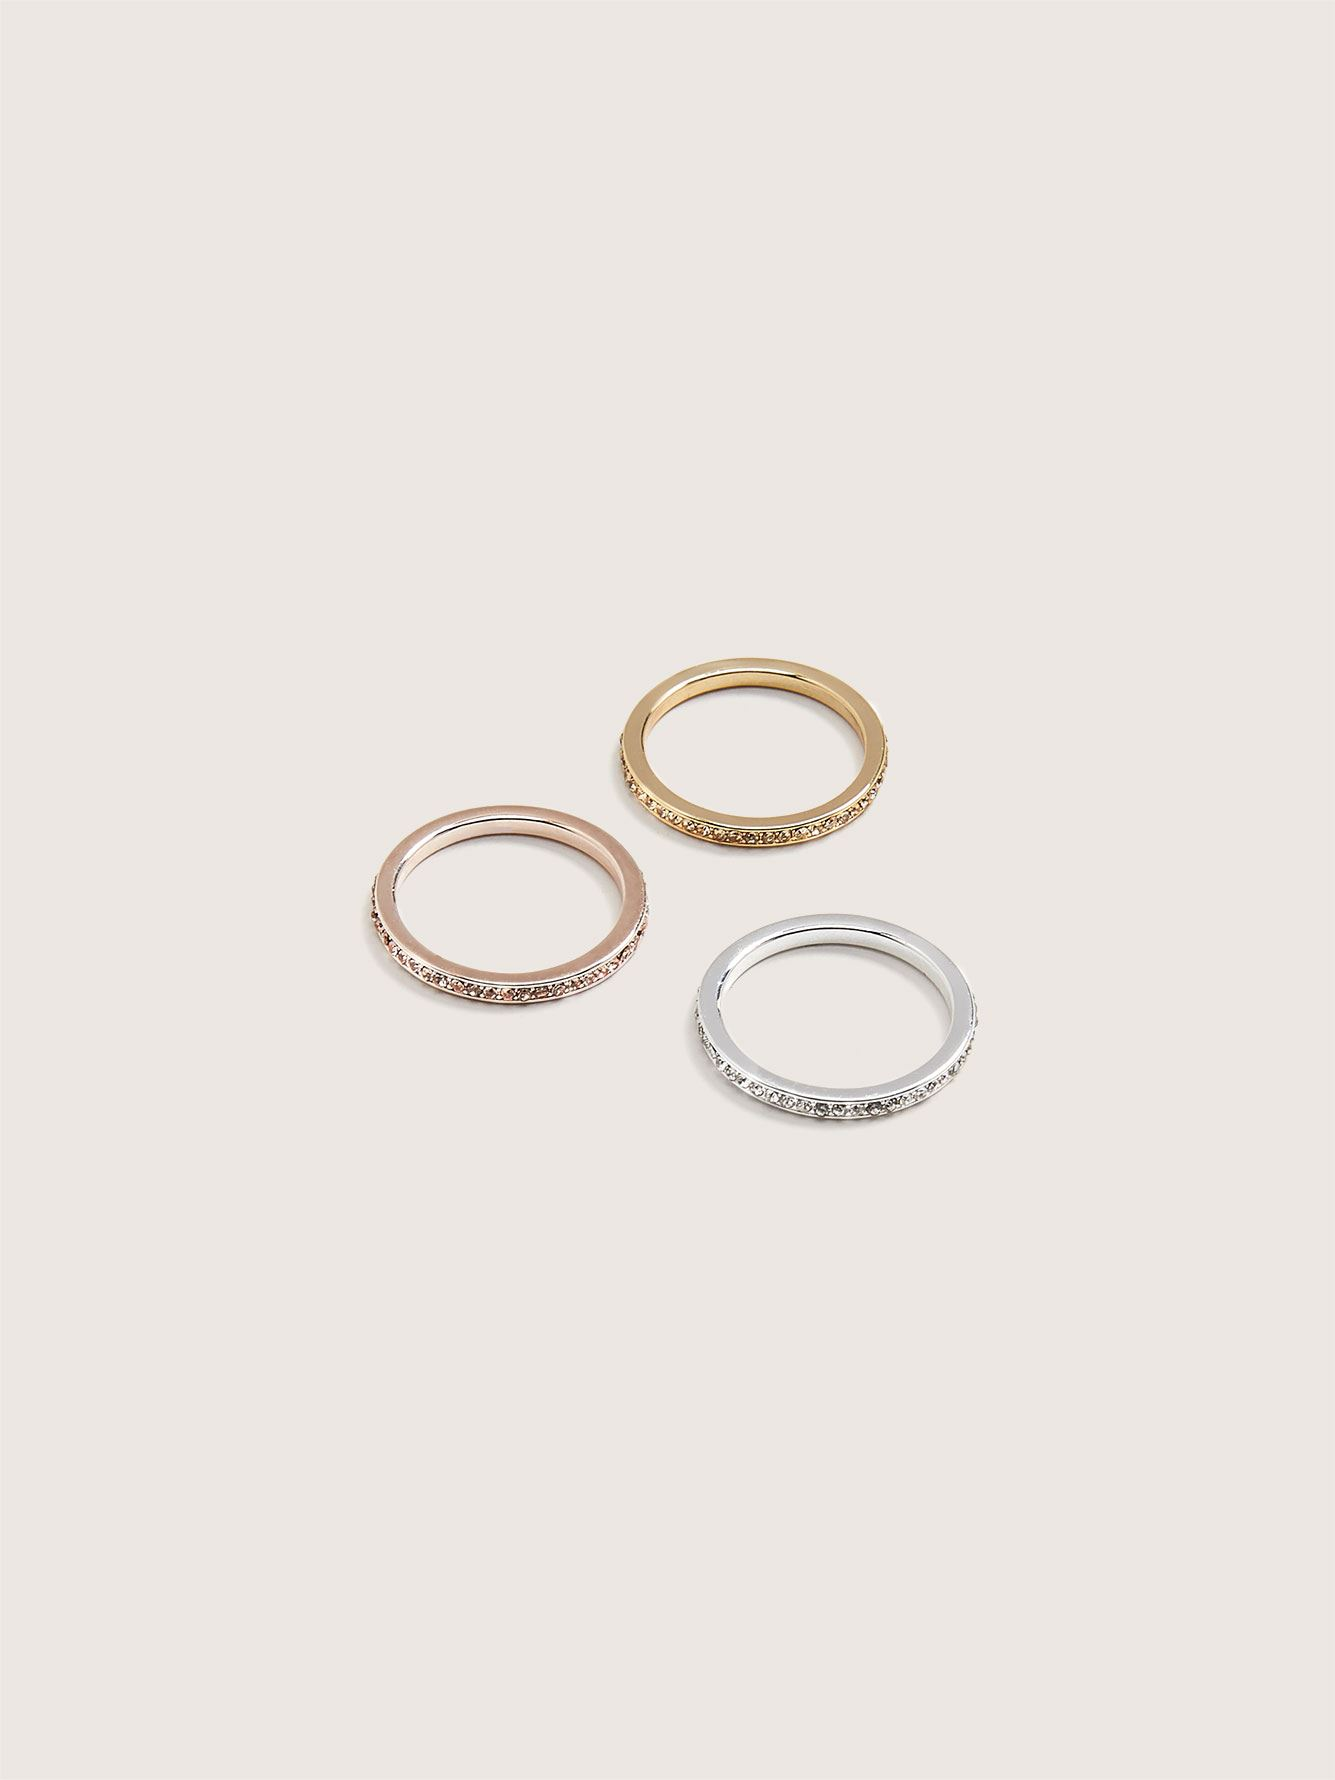 Rhinestone Rings, 3-Pack - Addition Elle